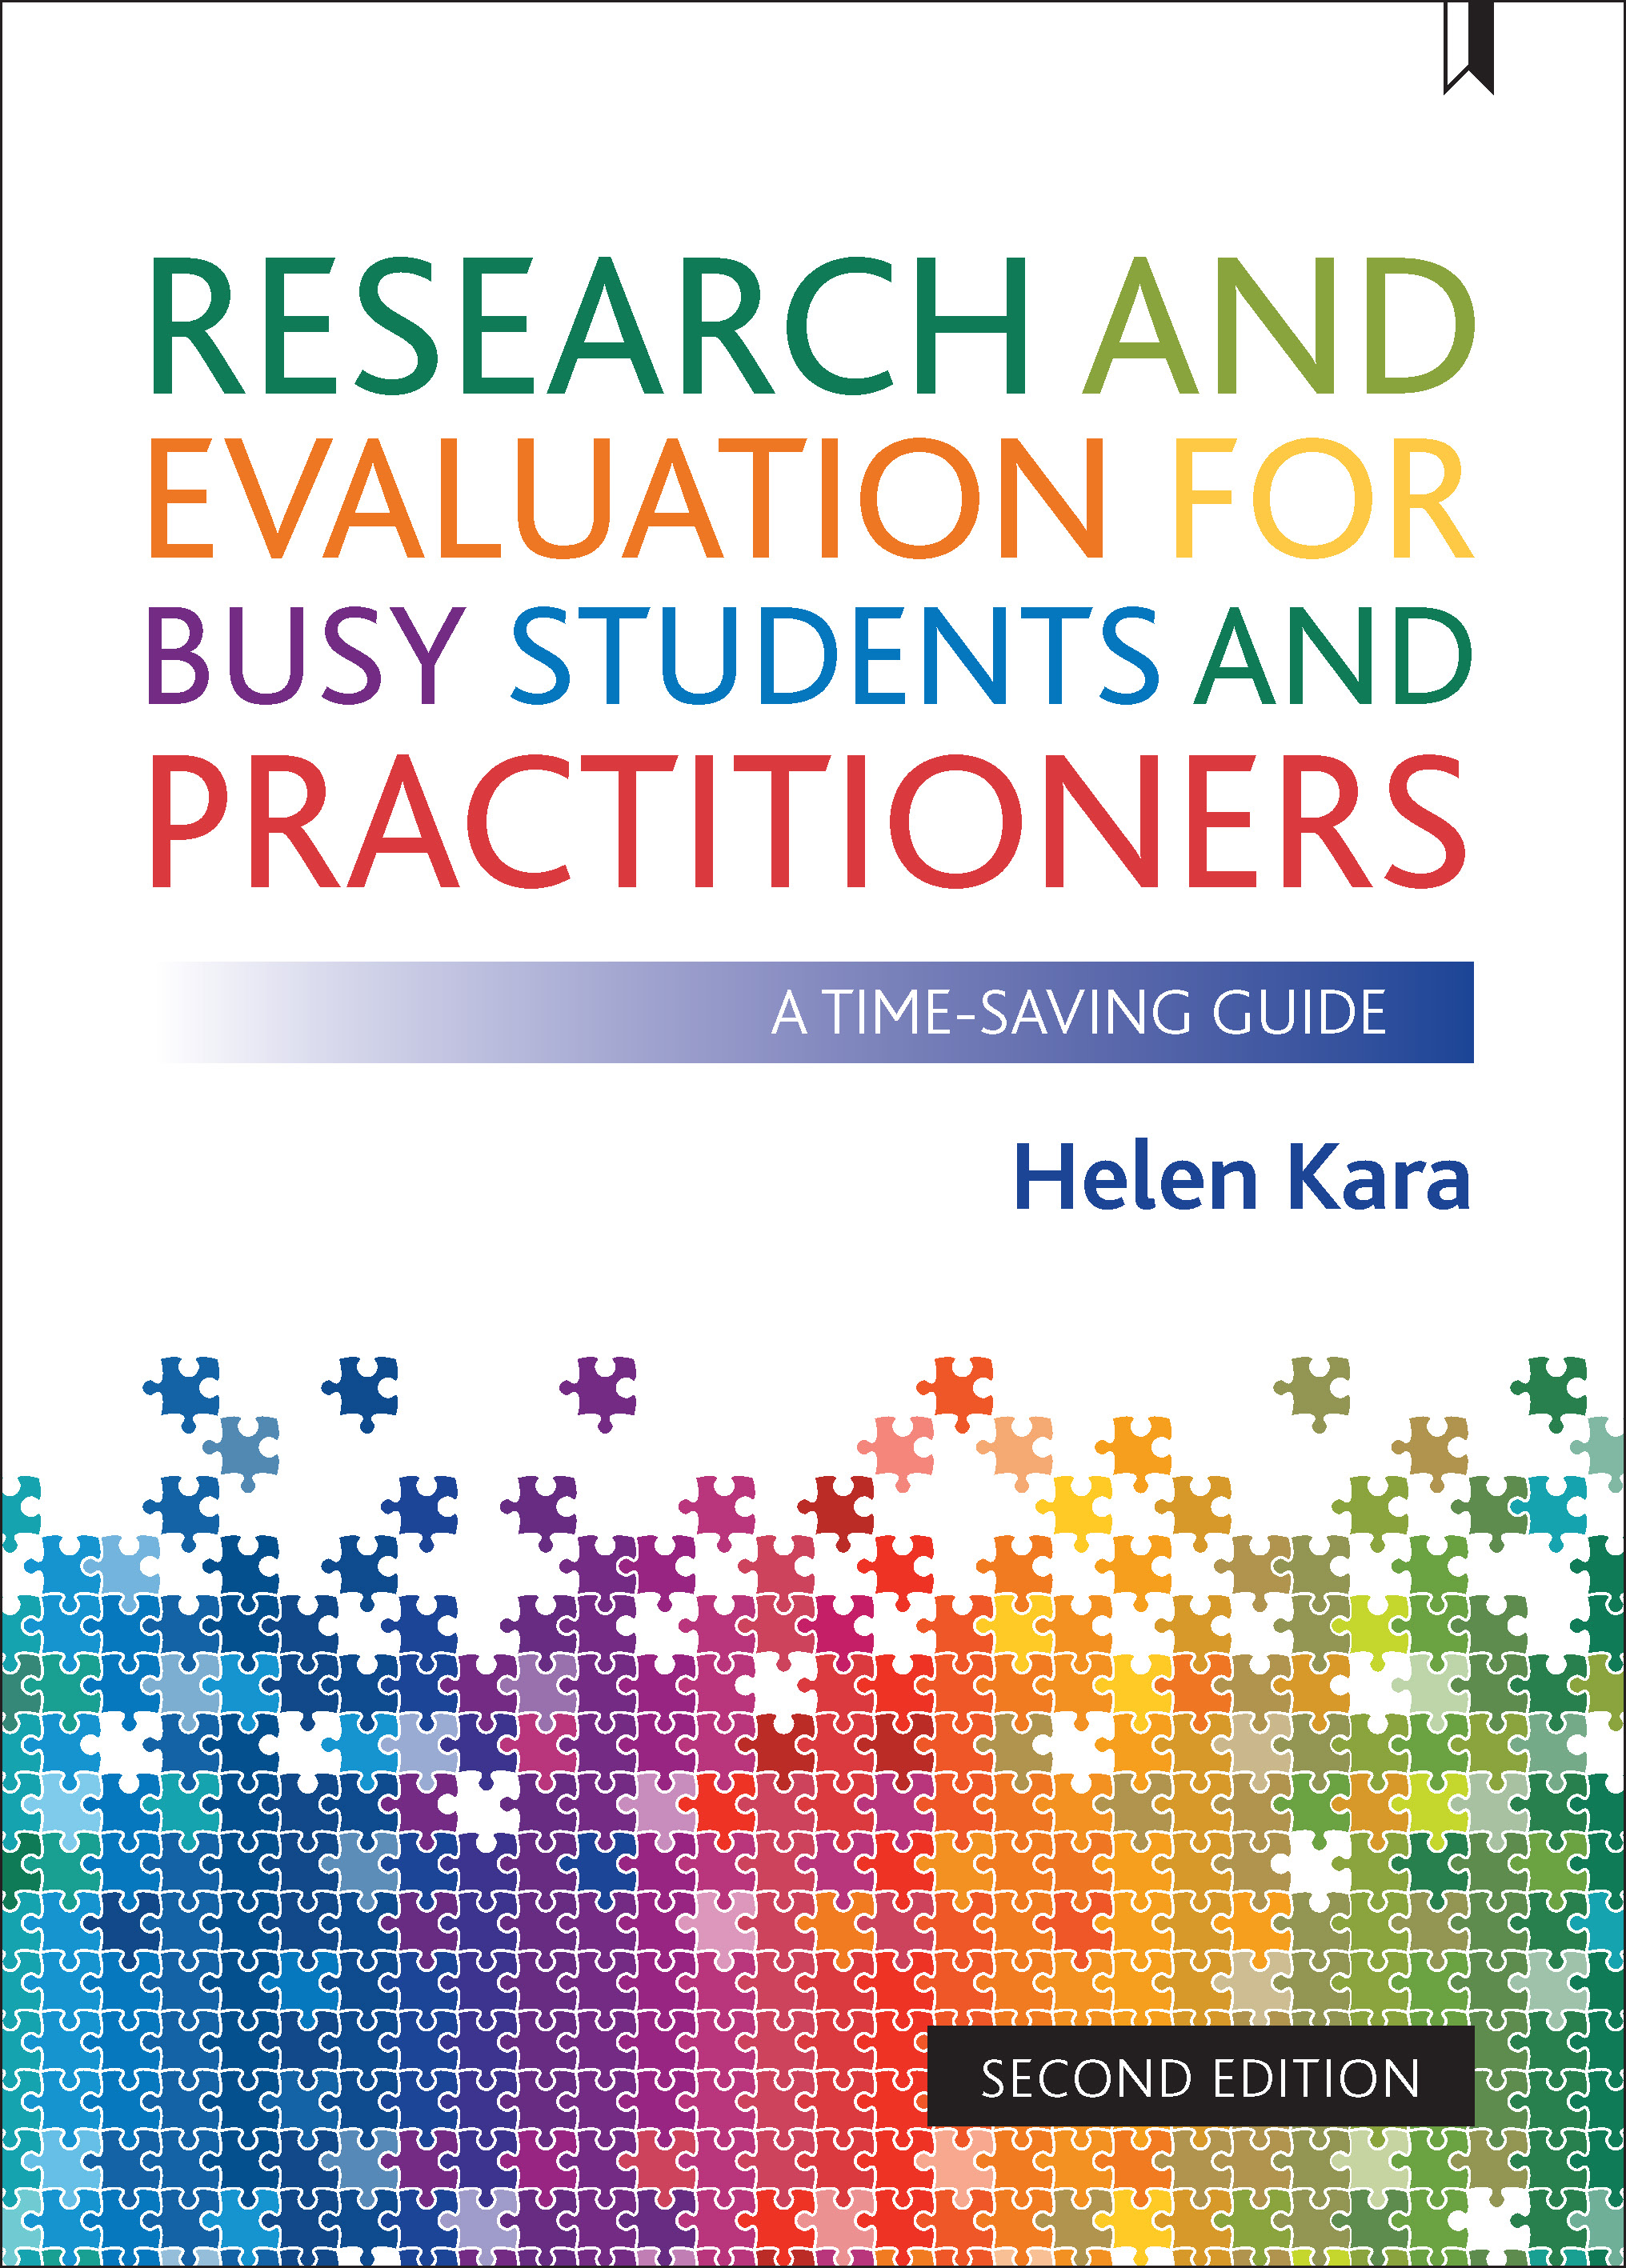 Research and evaluation for busy students and practitioners FC